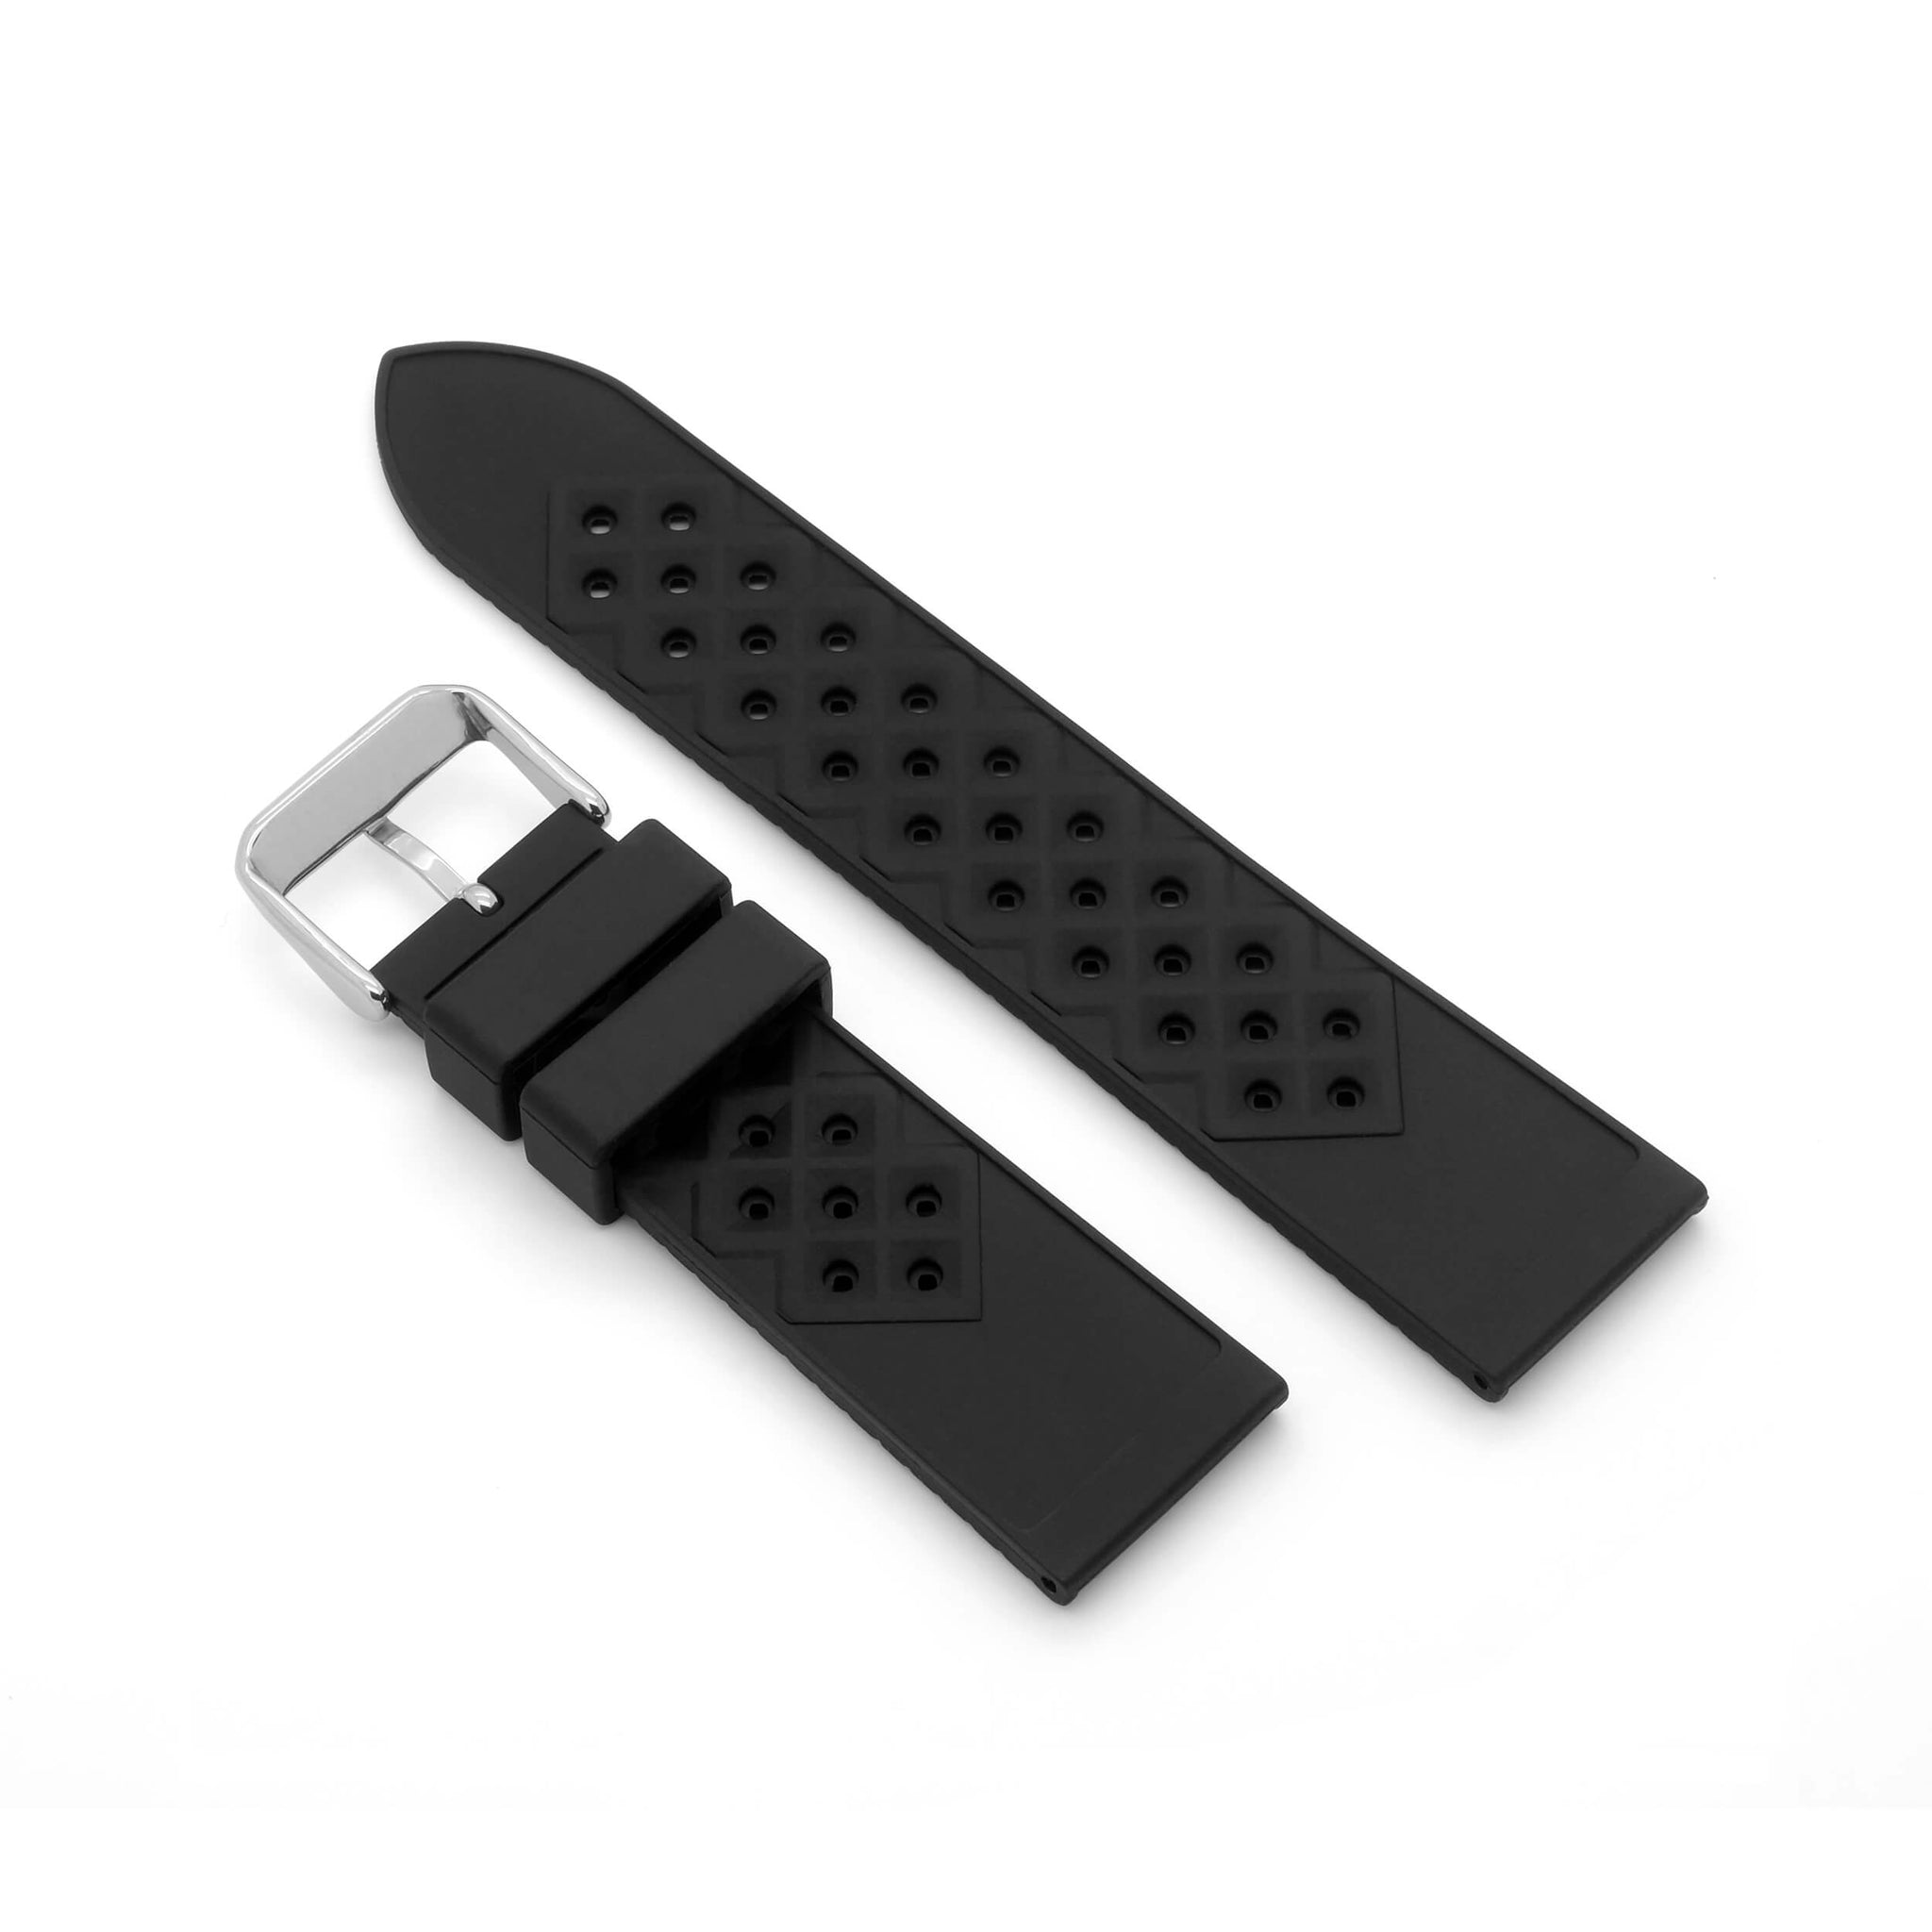 'Tropic' Rolex Style Rubber Watch Strap (Black)